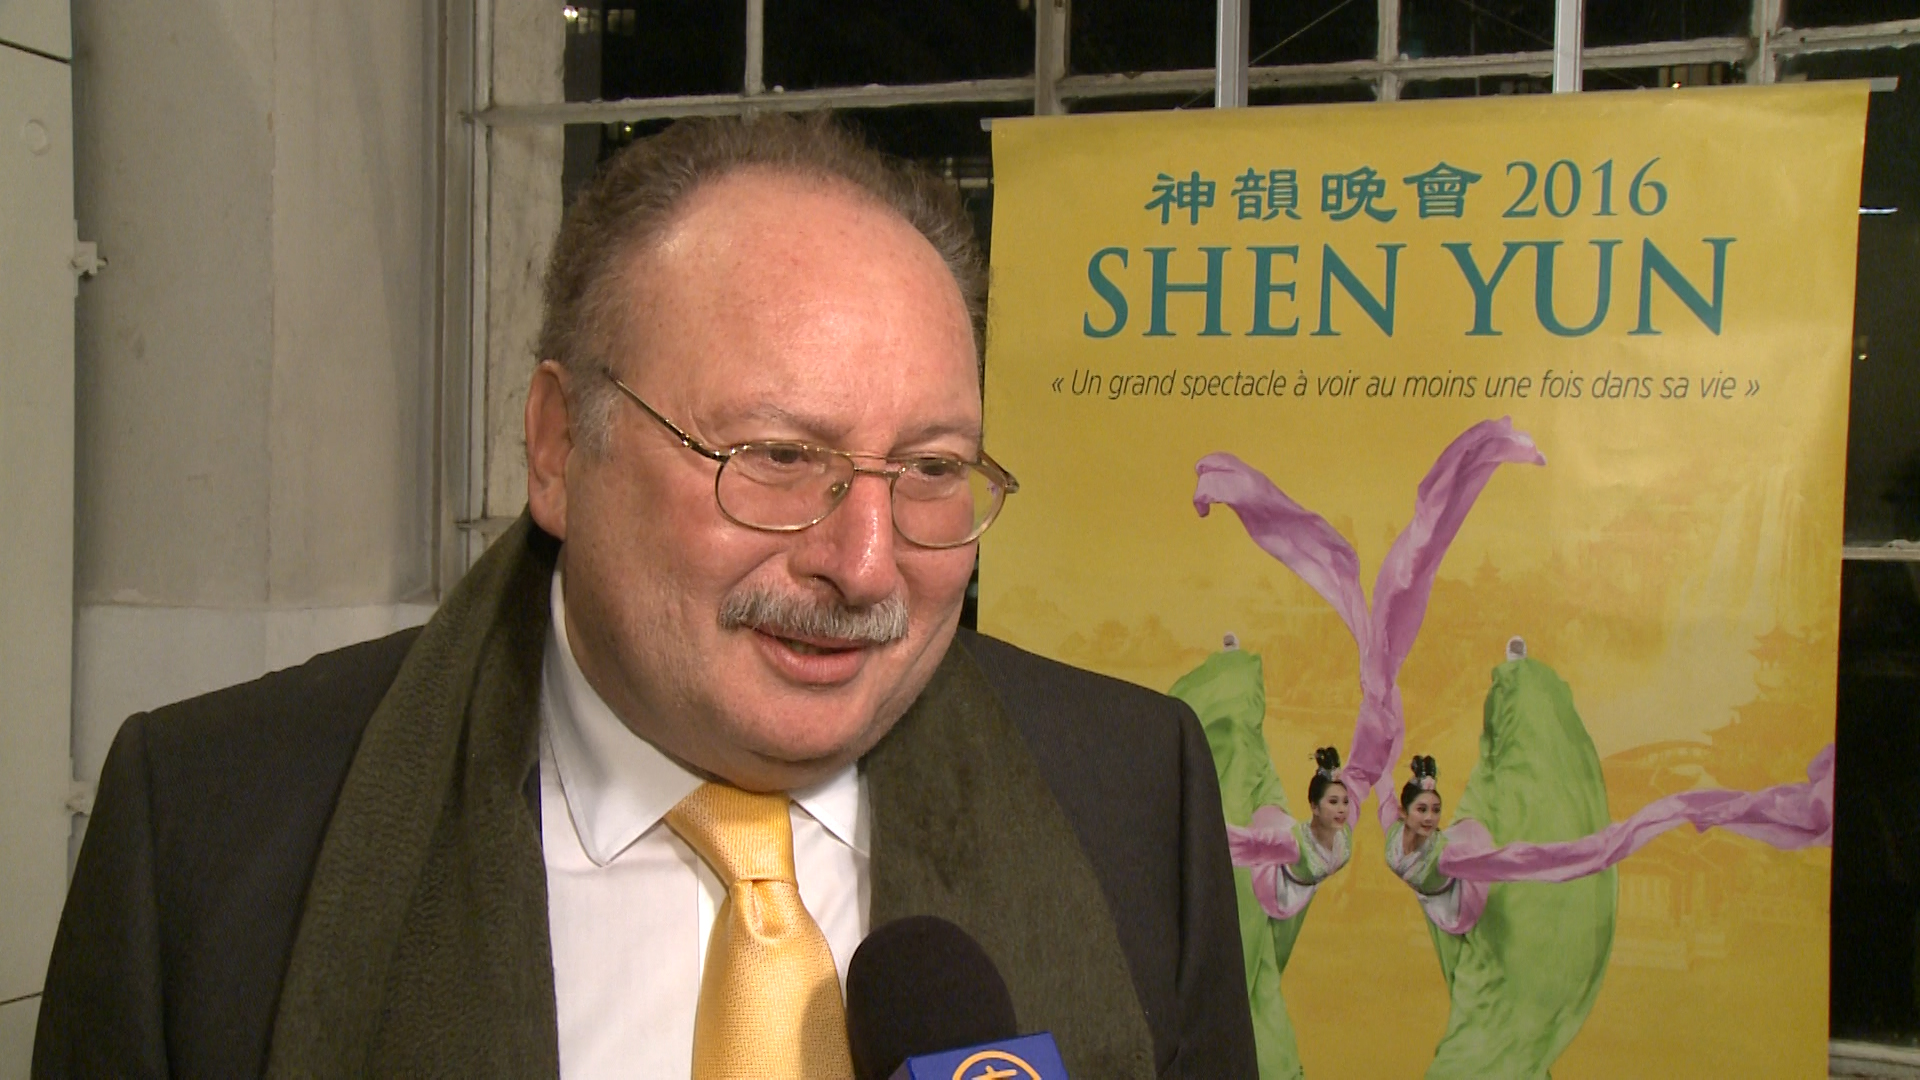 """Fouad II, the last king of Egypt, """"had a wonderful evening"""" at the first Shen Yun Performance in Geneva on Feb. 25, 2016. (NTD Television)"""